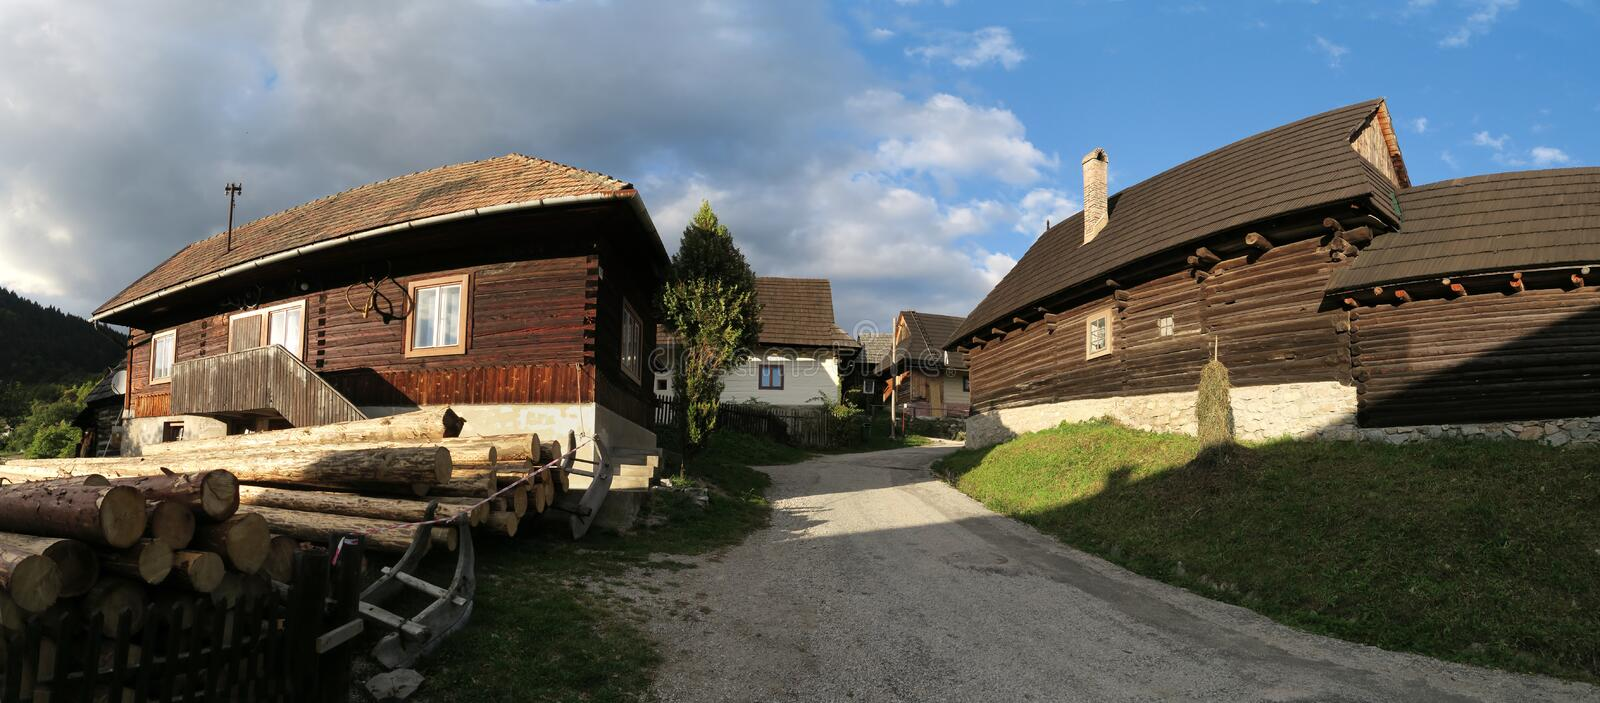 Vlkolinec - slovak village listed on UNESCO World Heritage list. Vlkolinec - slovak village in central Slovakia listed on UNESCO World Heritage list stock photography